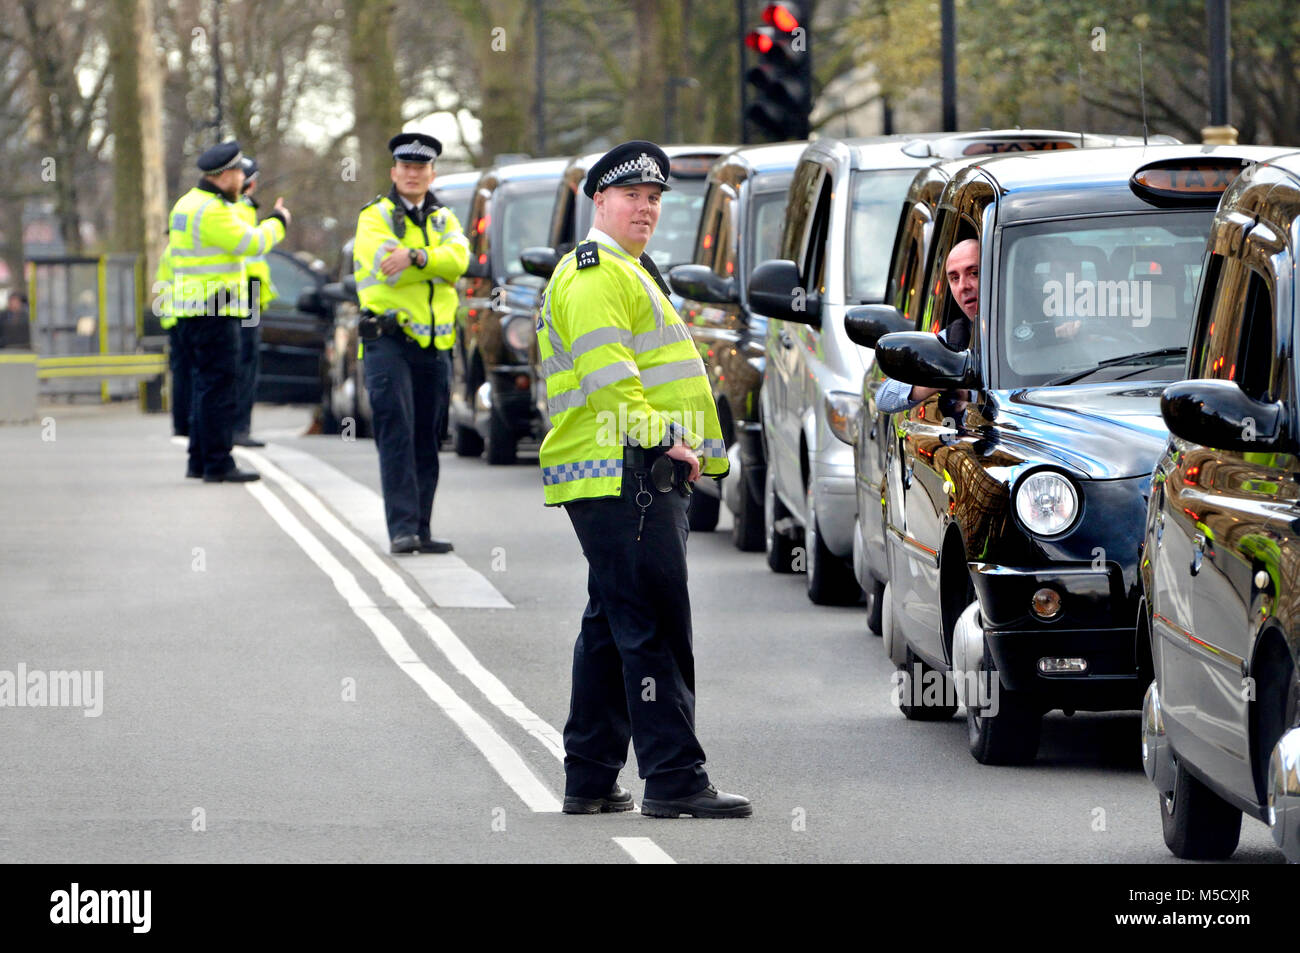 London, England, UK. Police and taxi drivers during a protest against the Uber taxi app - Stock Image